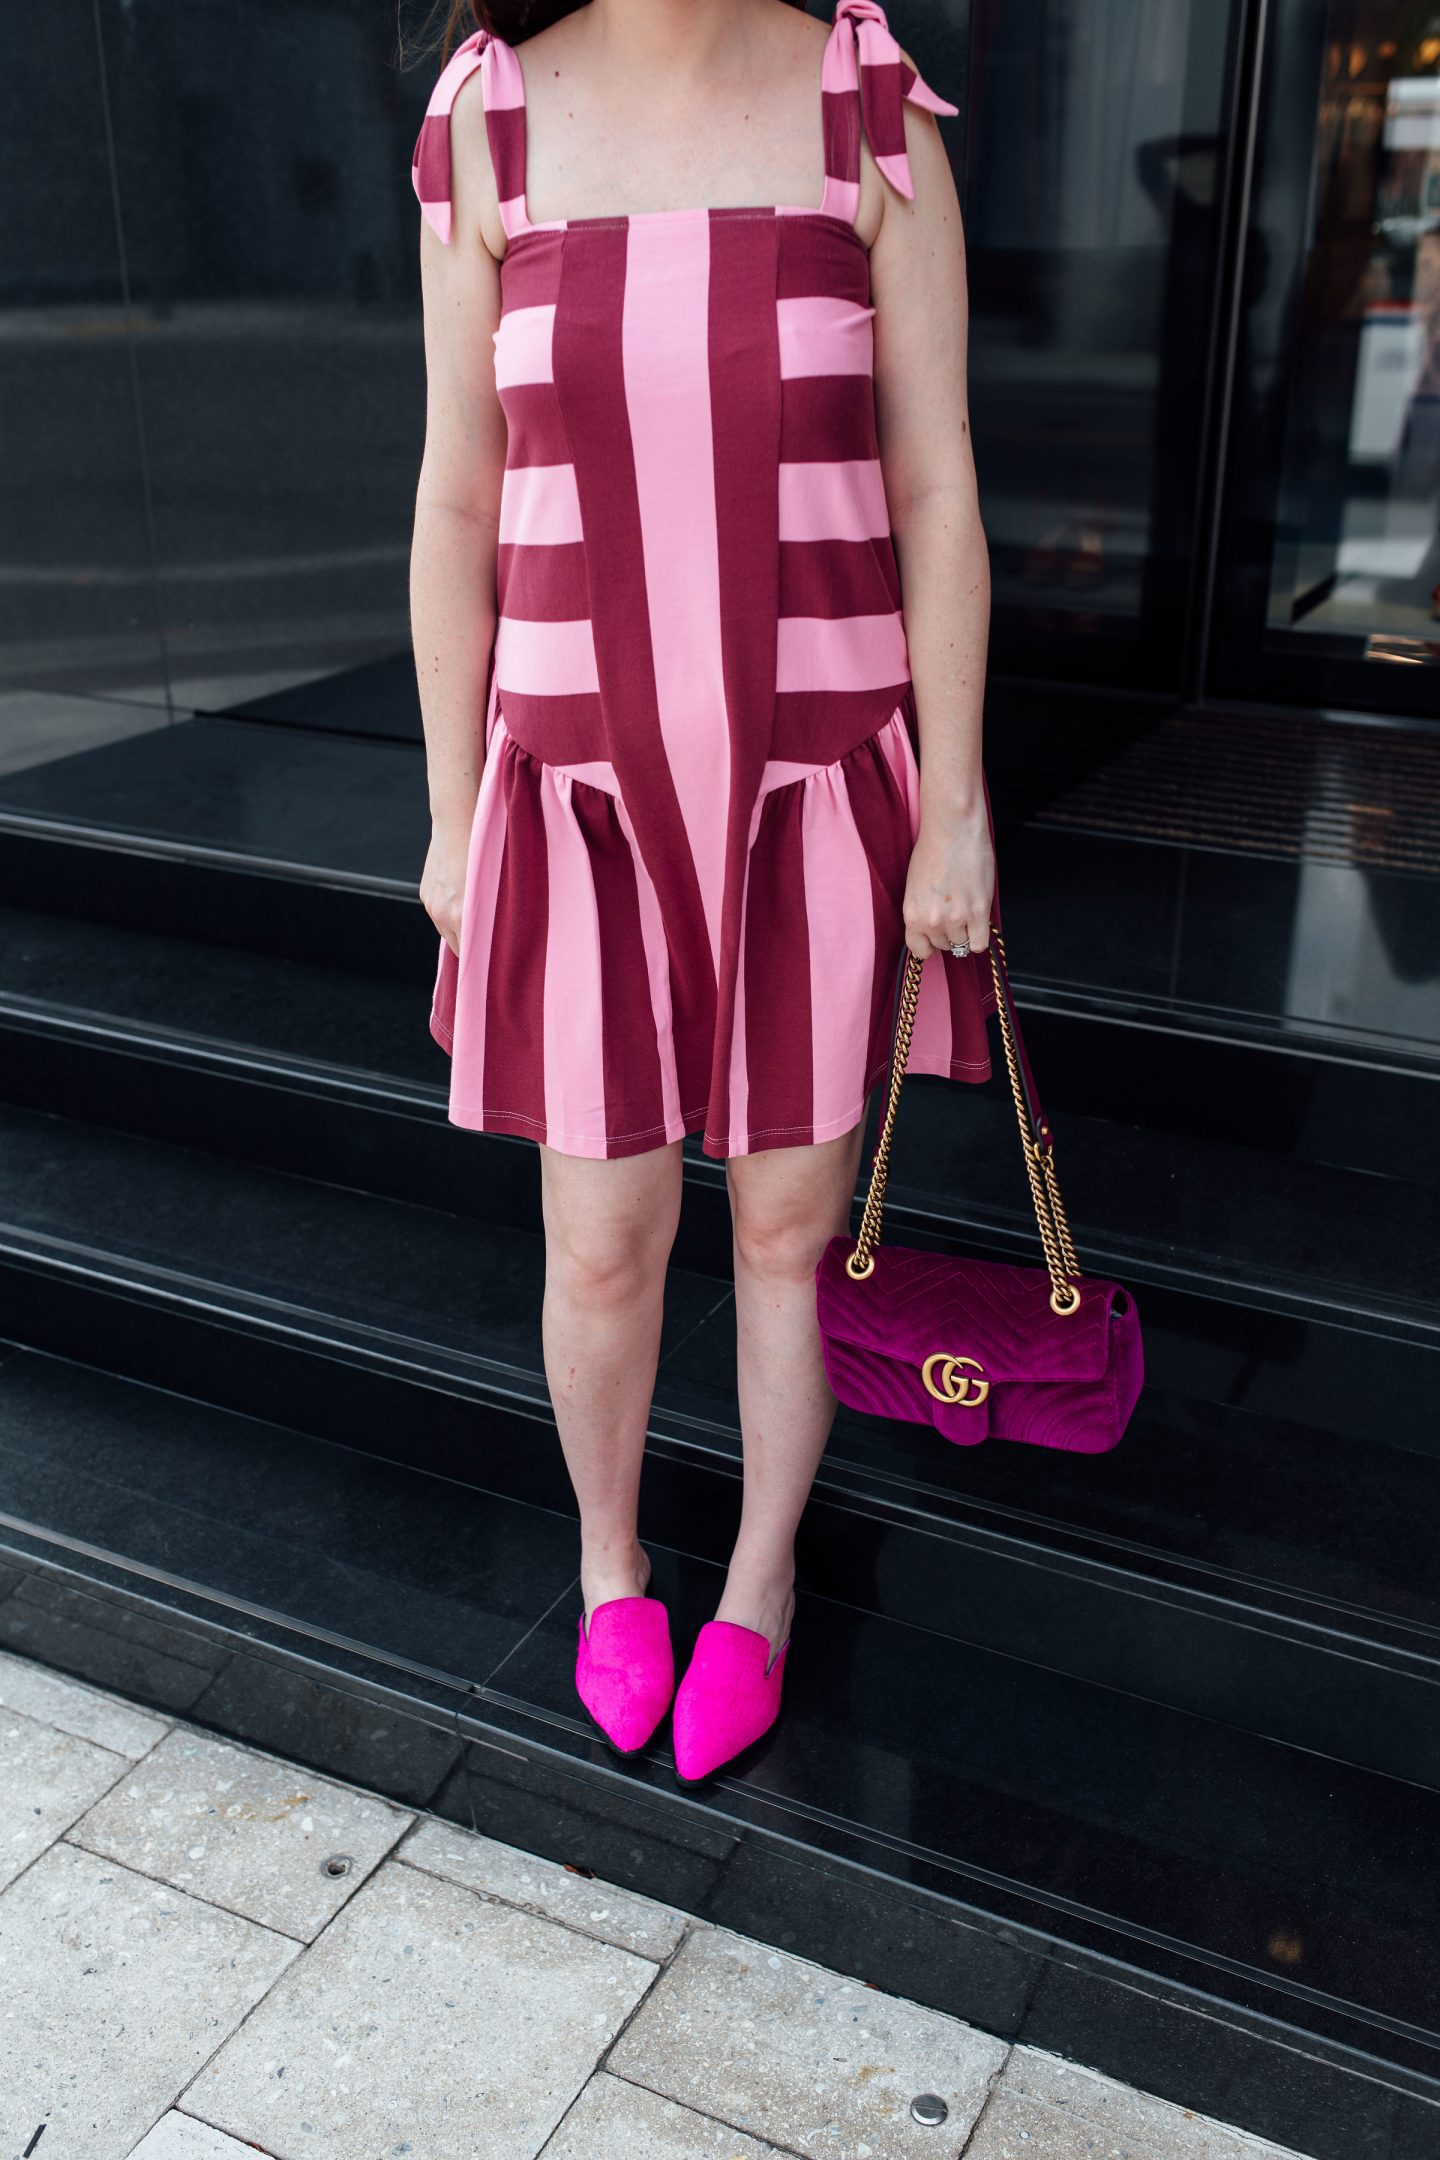 5 FASHION TRENDS WORTH BREAKING THE BANK, Gucci marmont small velvet, Gucci marmont fuchsia bag, Gucci marmont velvet small bag, striped dress, pink and purple dress, pink mules, hot pink mules, asos dress, asos striped dress, spring fashion 2018, summer fashion 2018, fashion inspiration 201i8